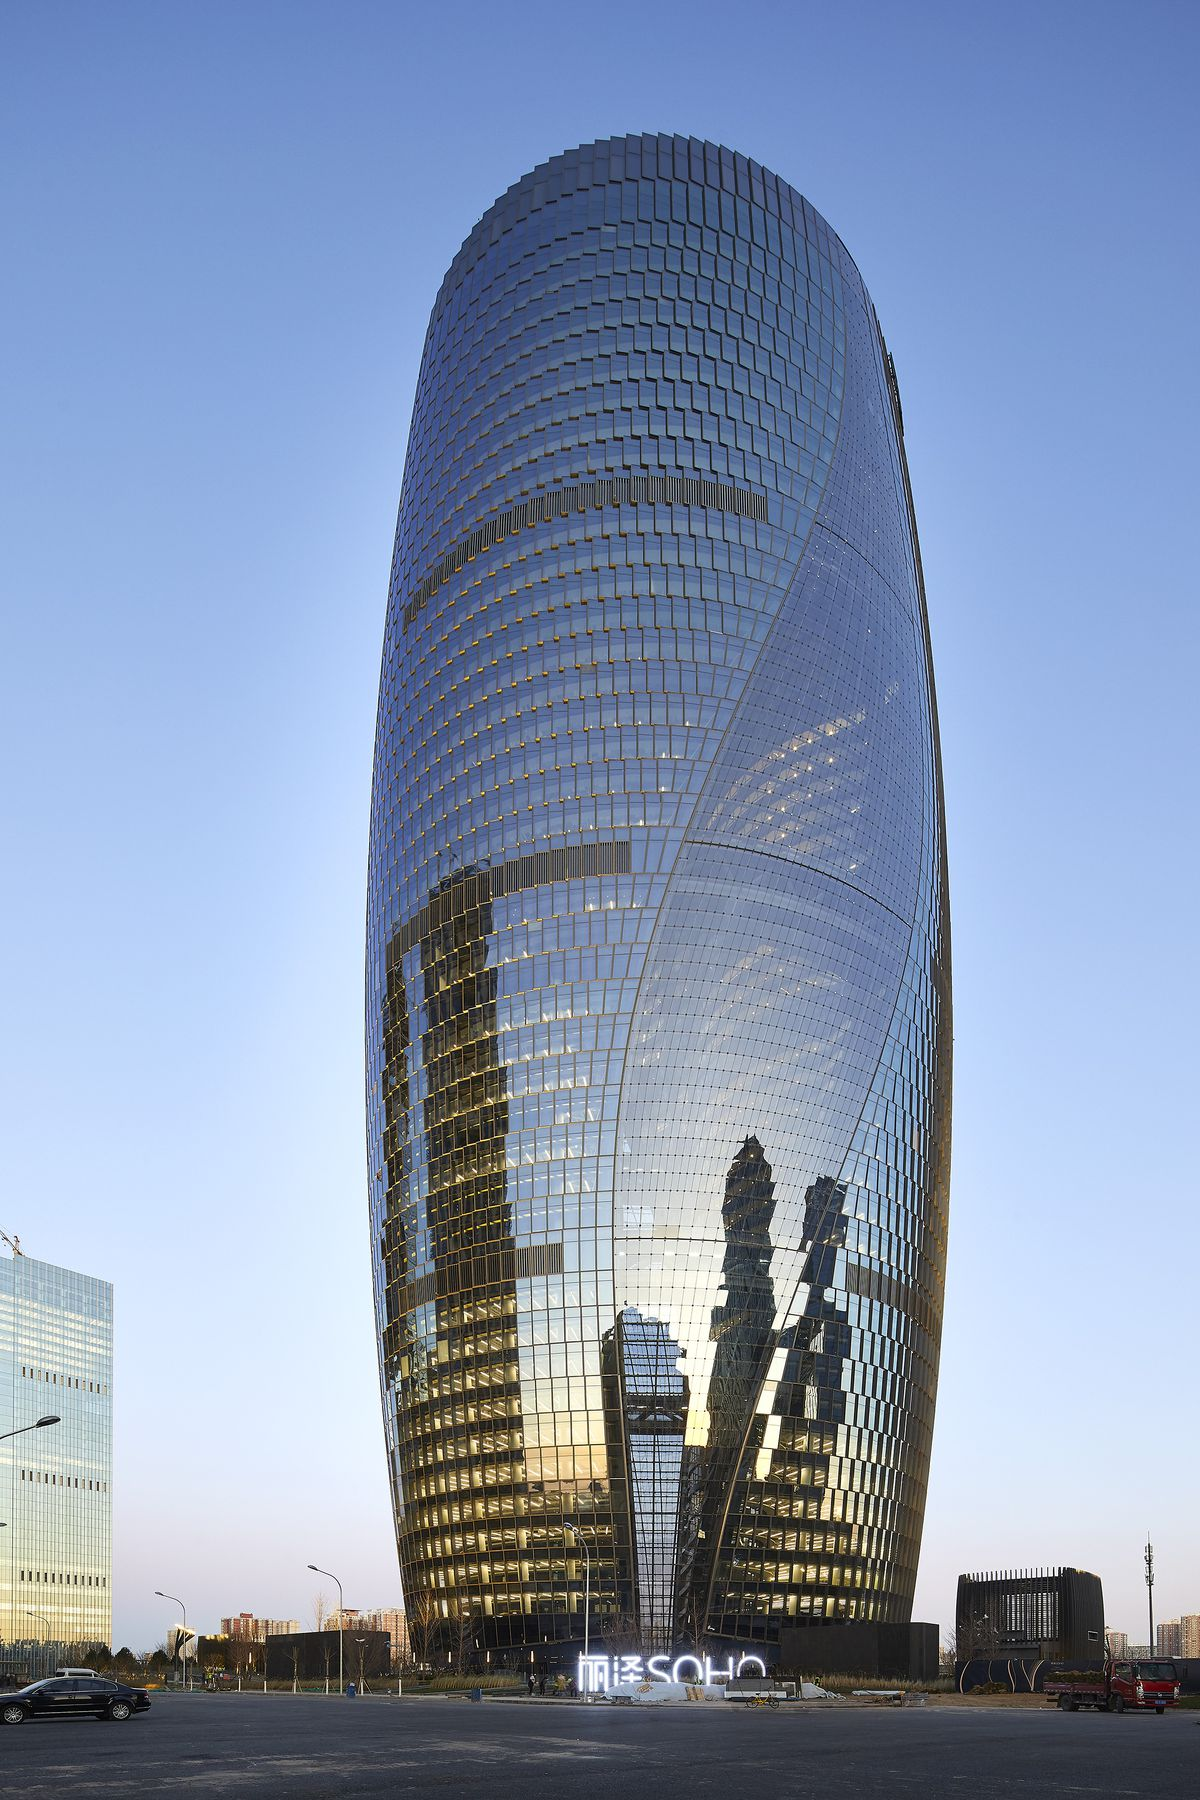 Cylindrical glass tower at dusk.